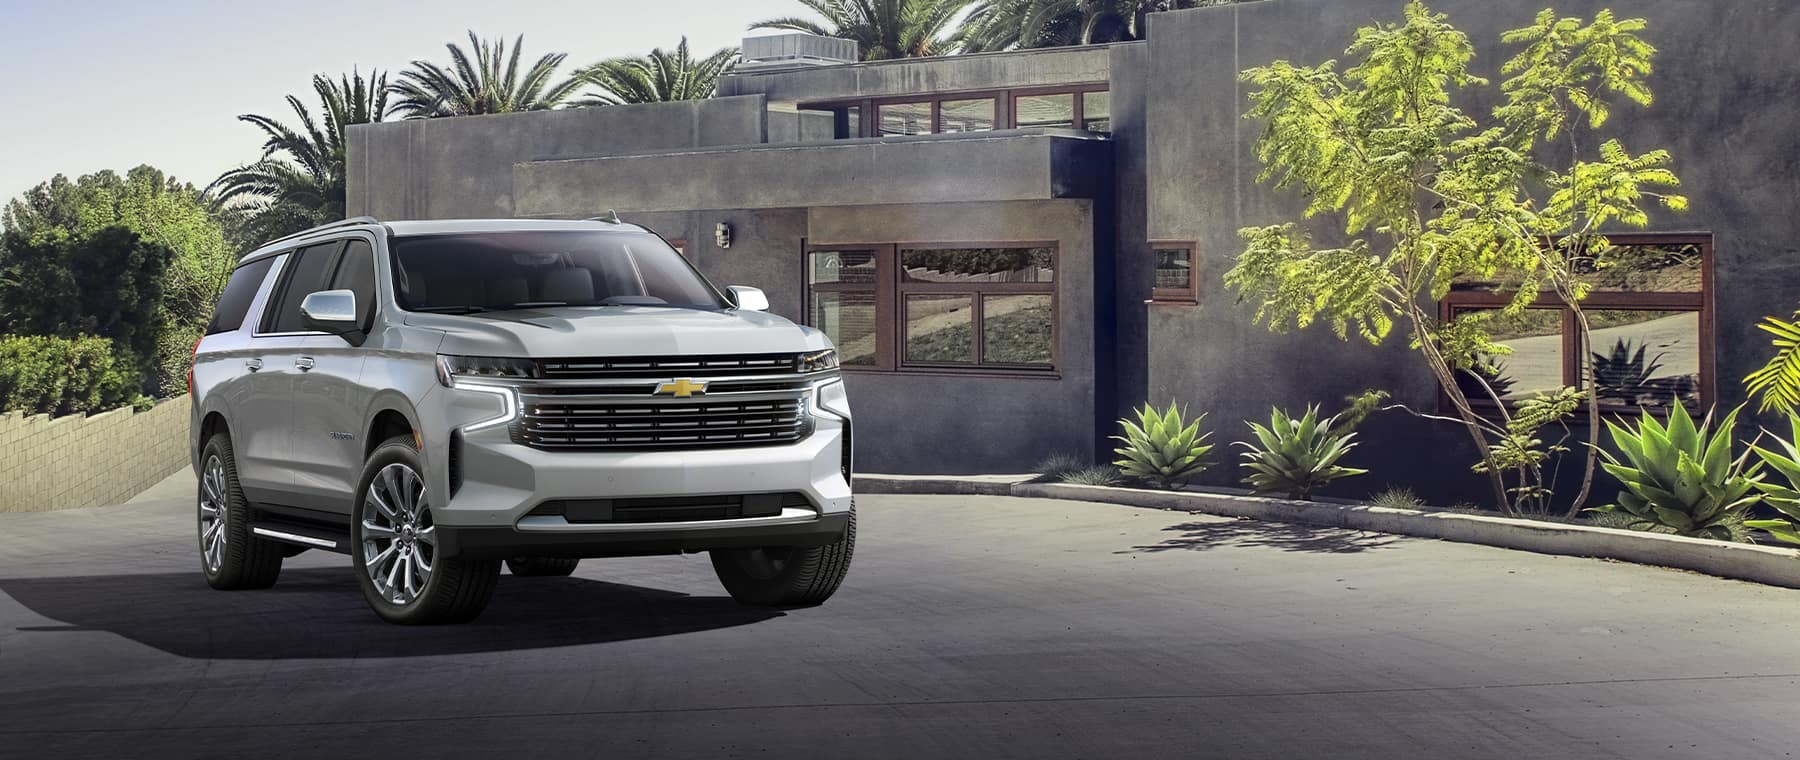 2021 Chevrolet Suburban in front of home